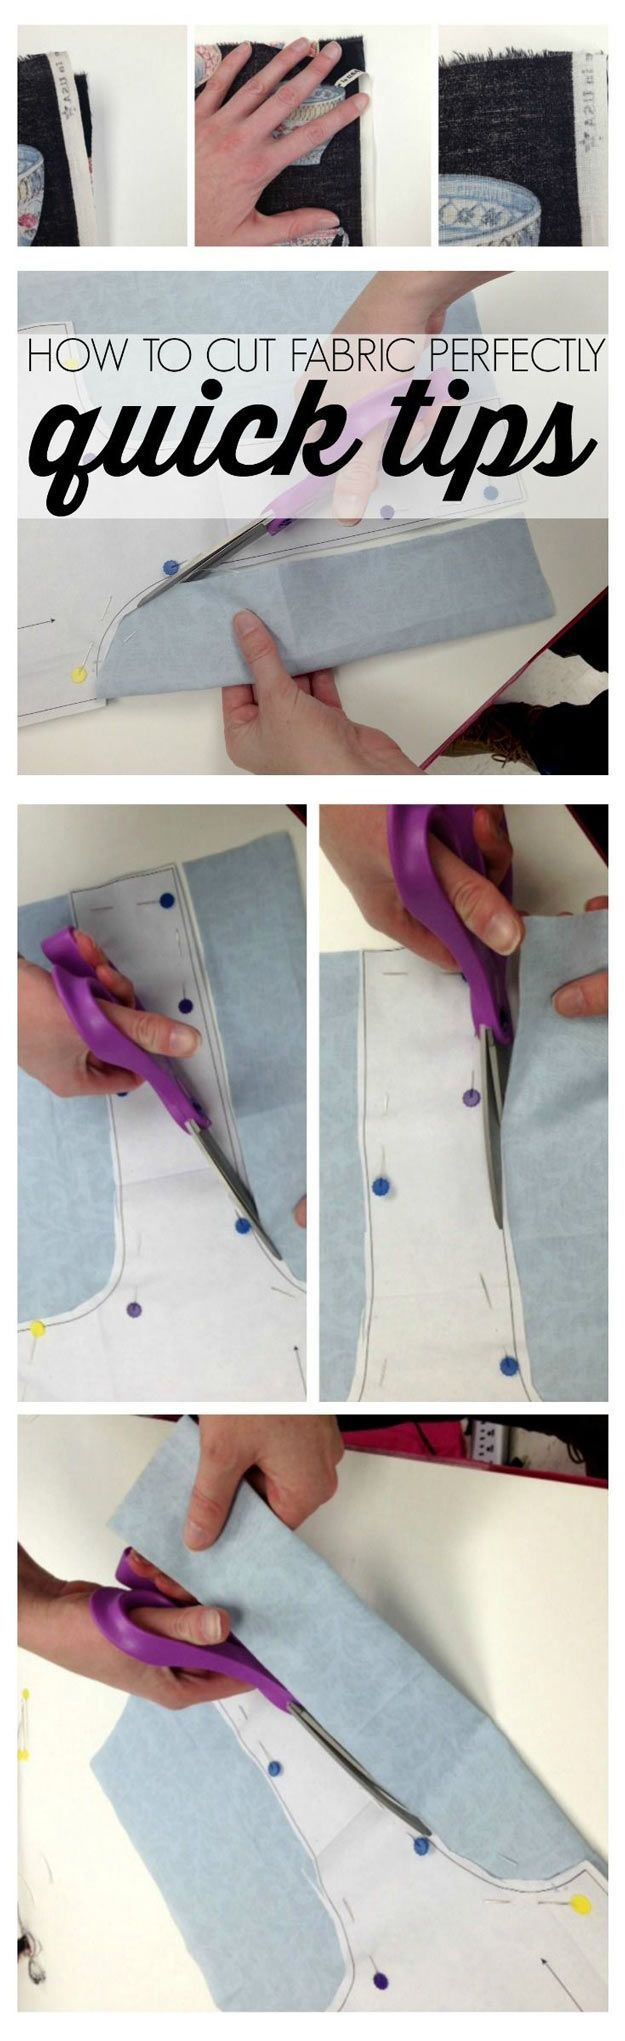 MUST READ: 37 Life Changing Sewing Hacks | Syprojekter